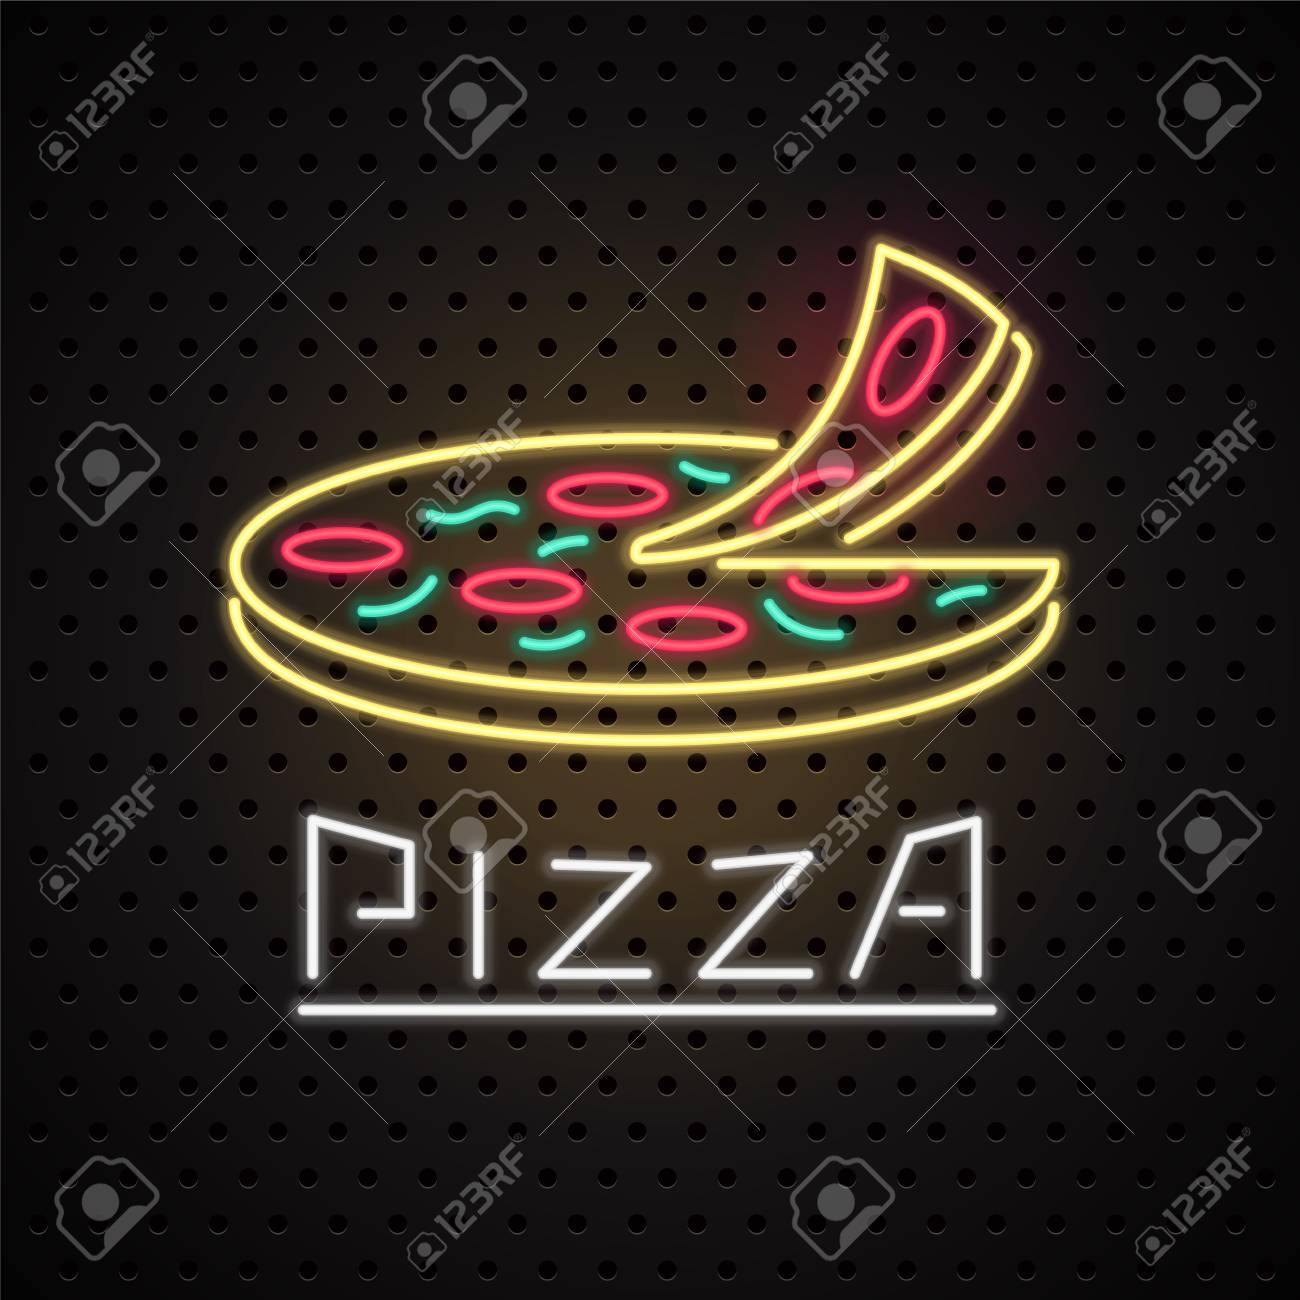 vector icon design element for pizza with neon sign template